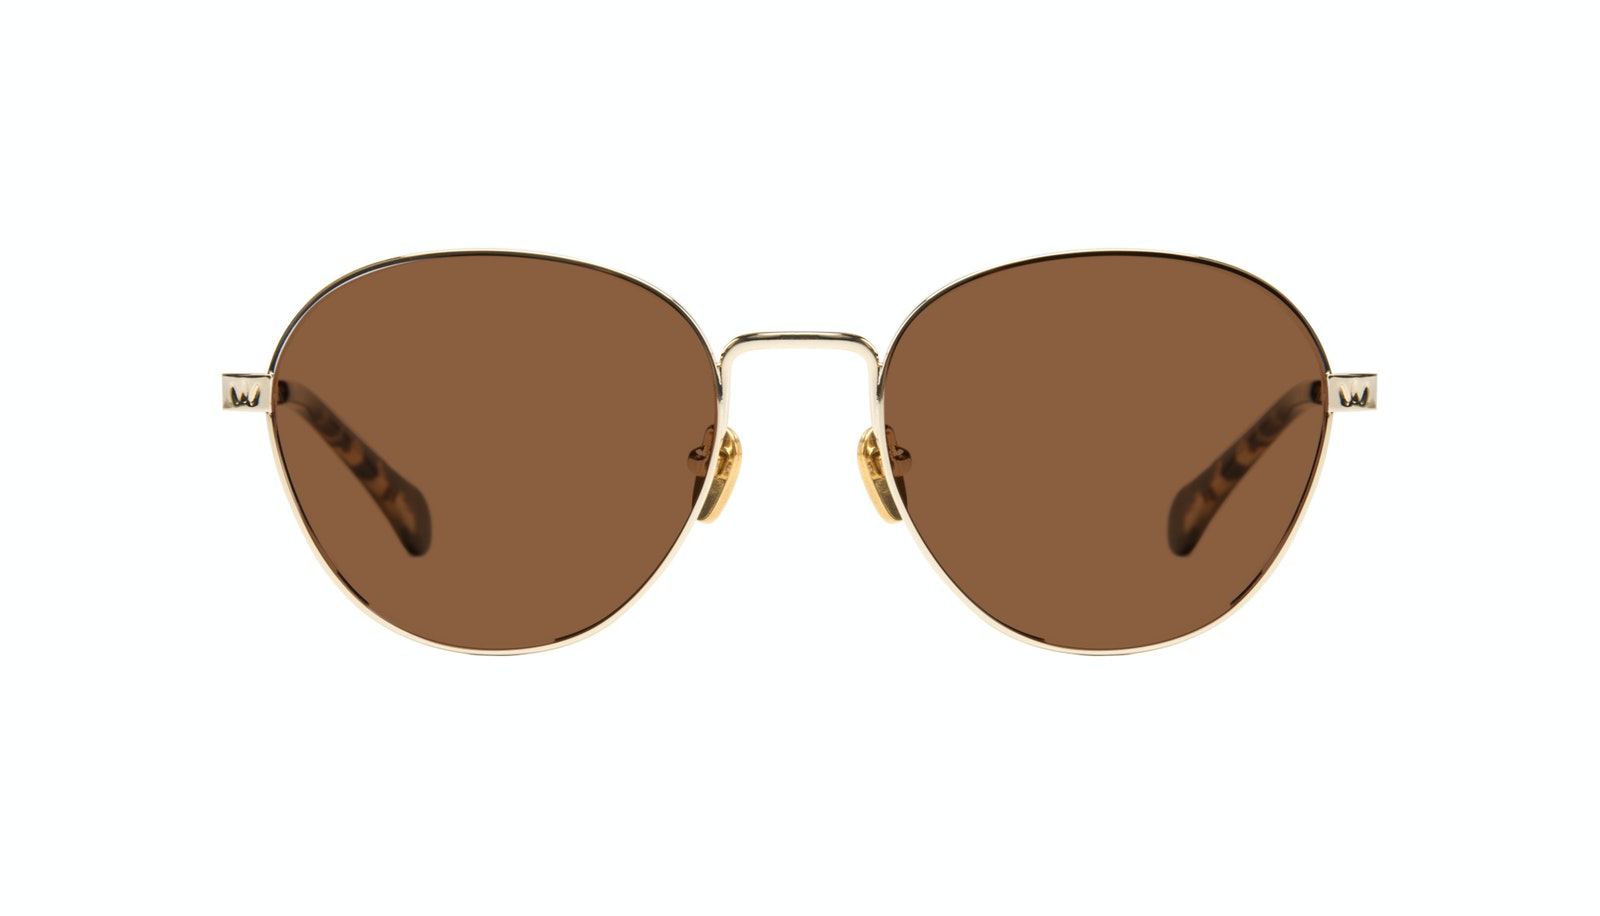 Affordable Fashion Glasses Round Sunglasses Women Brace Gold